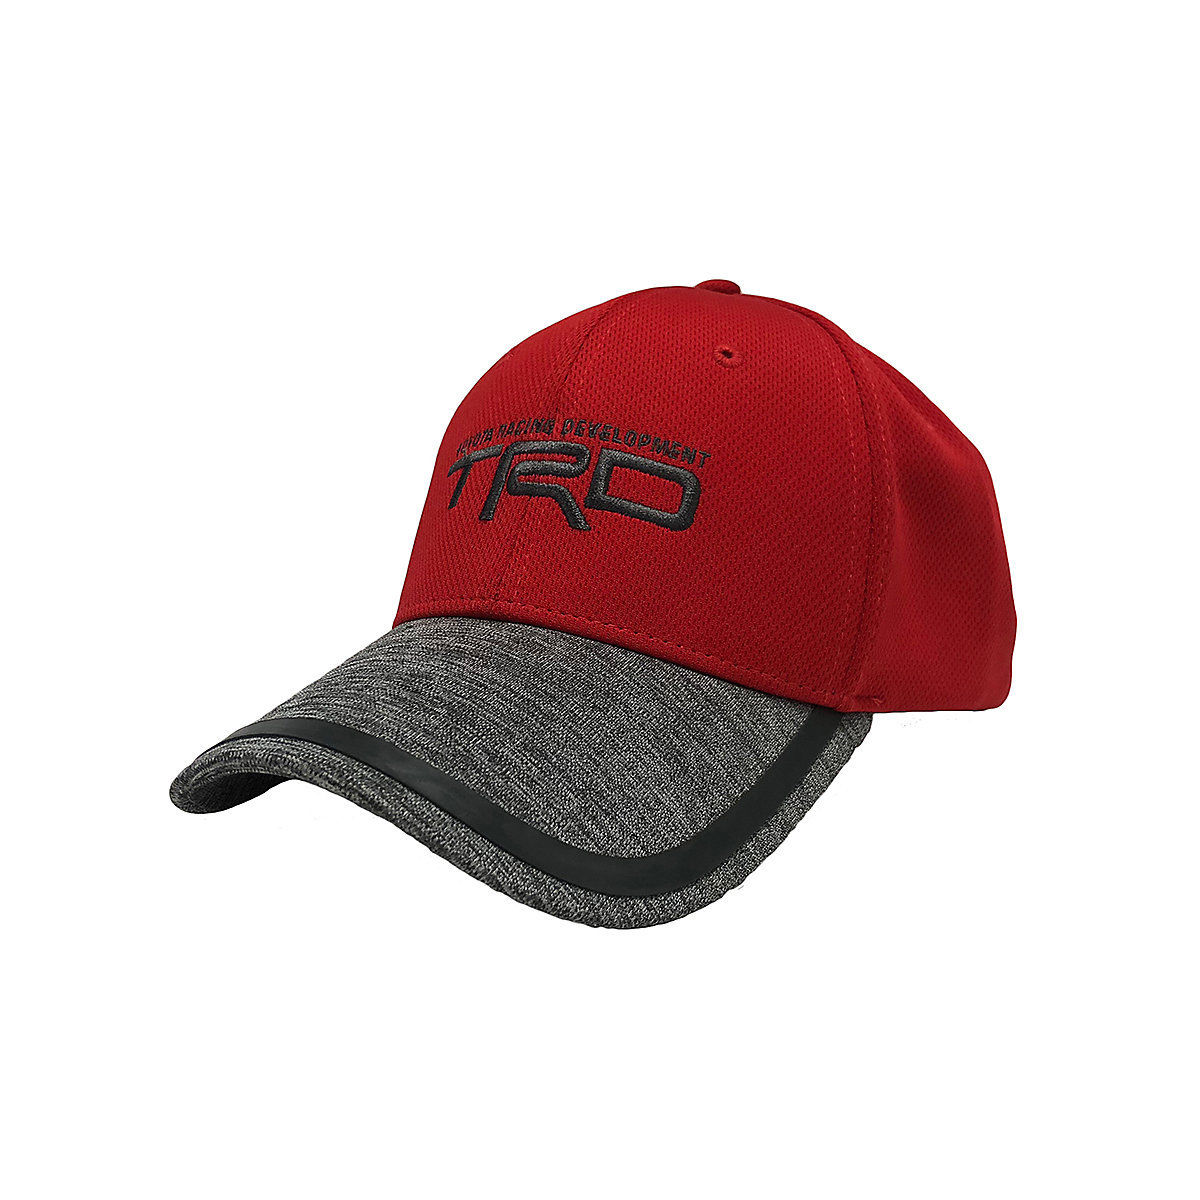 5ab3057d7c0 Awesome Toyota TRD Red and Gray Jersey Polyester Hat 2018-2019 ...